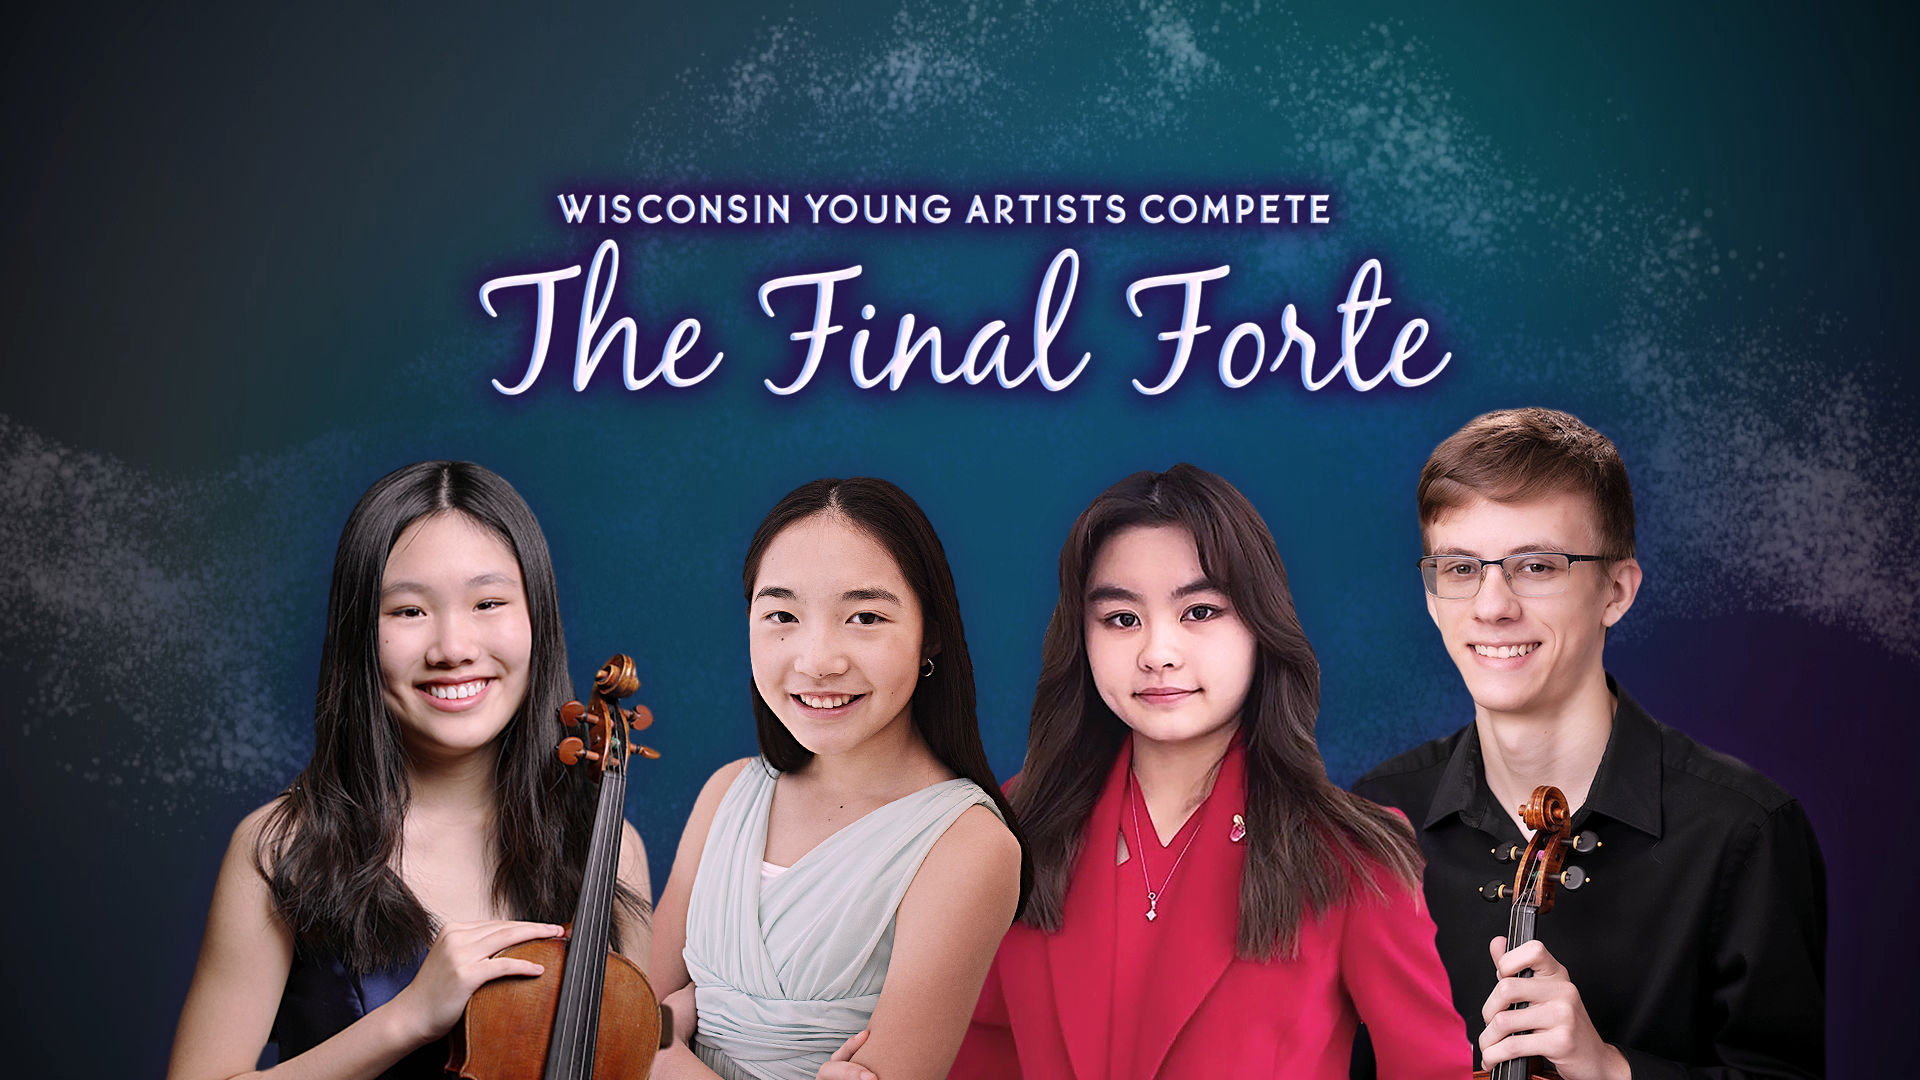 Wisconsin Young Artists Compete: The Final Forte 2021